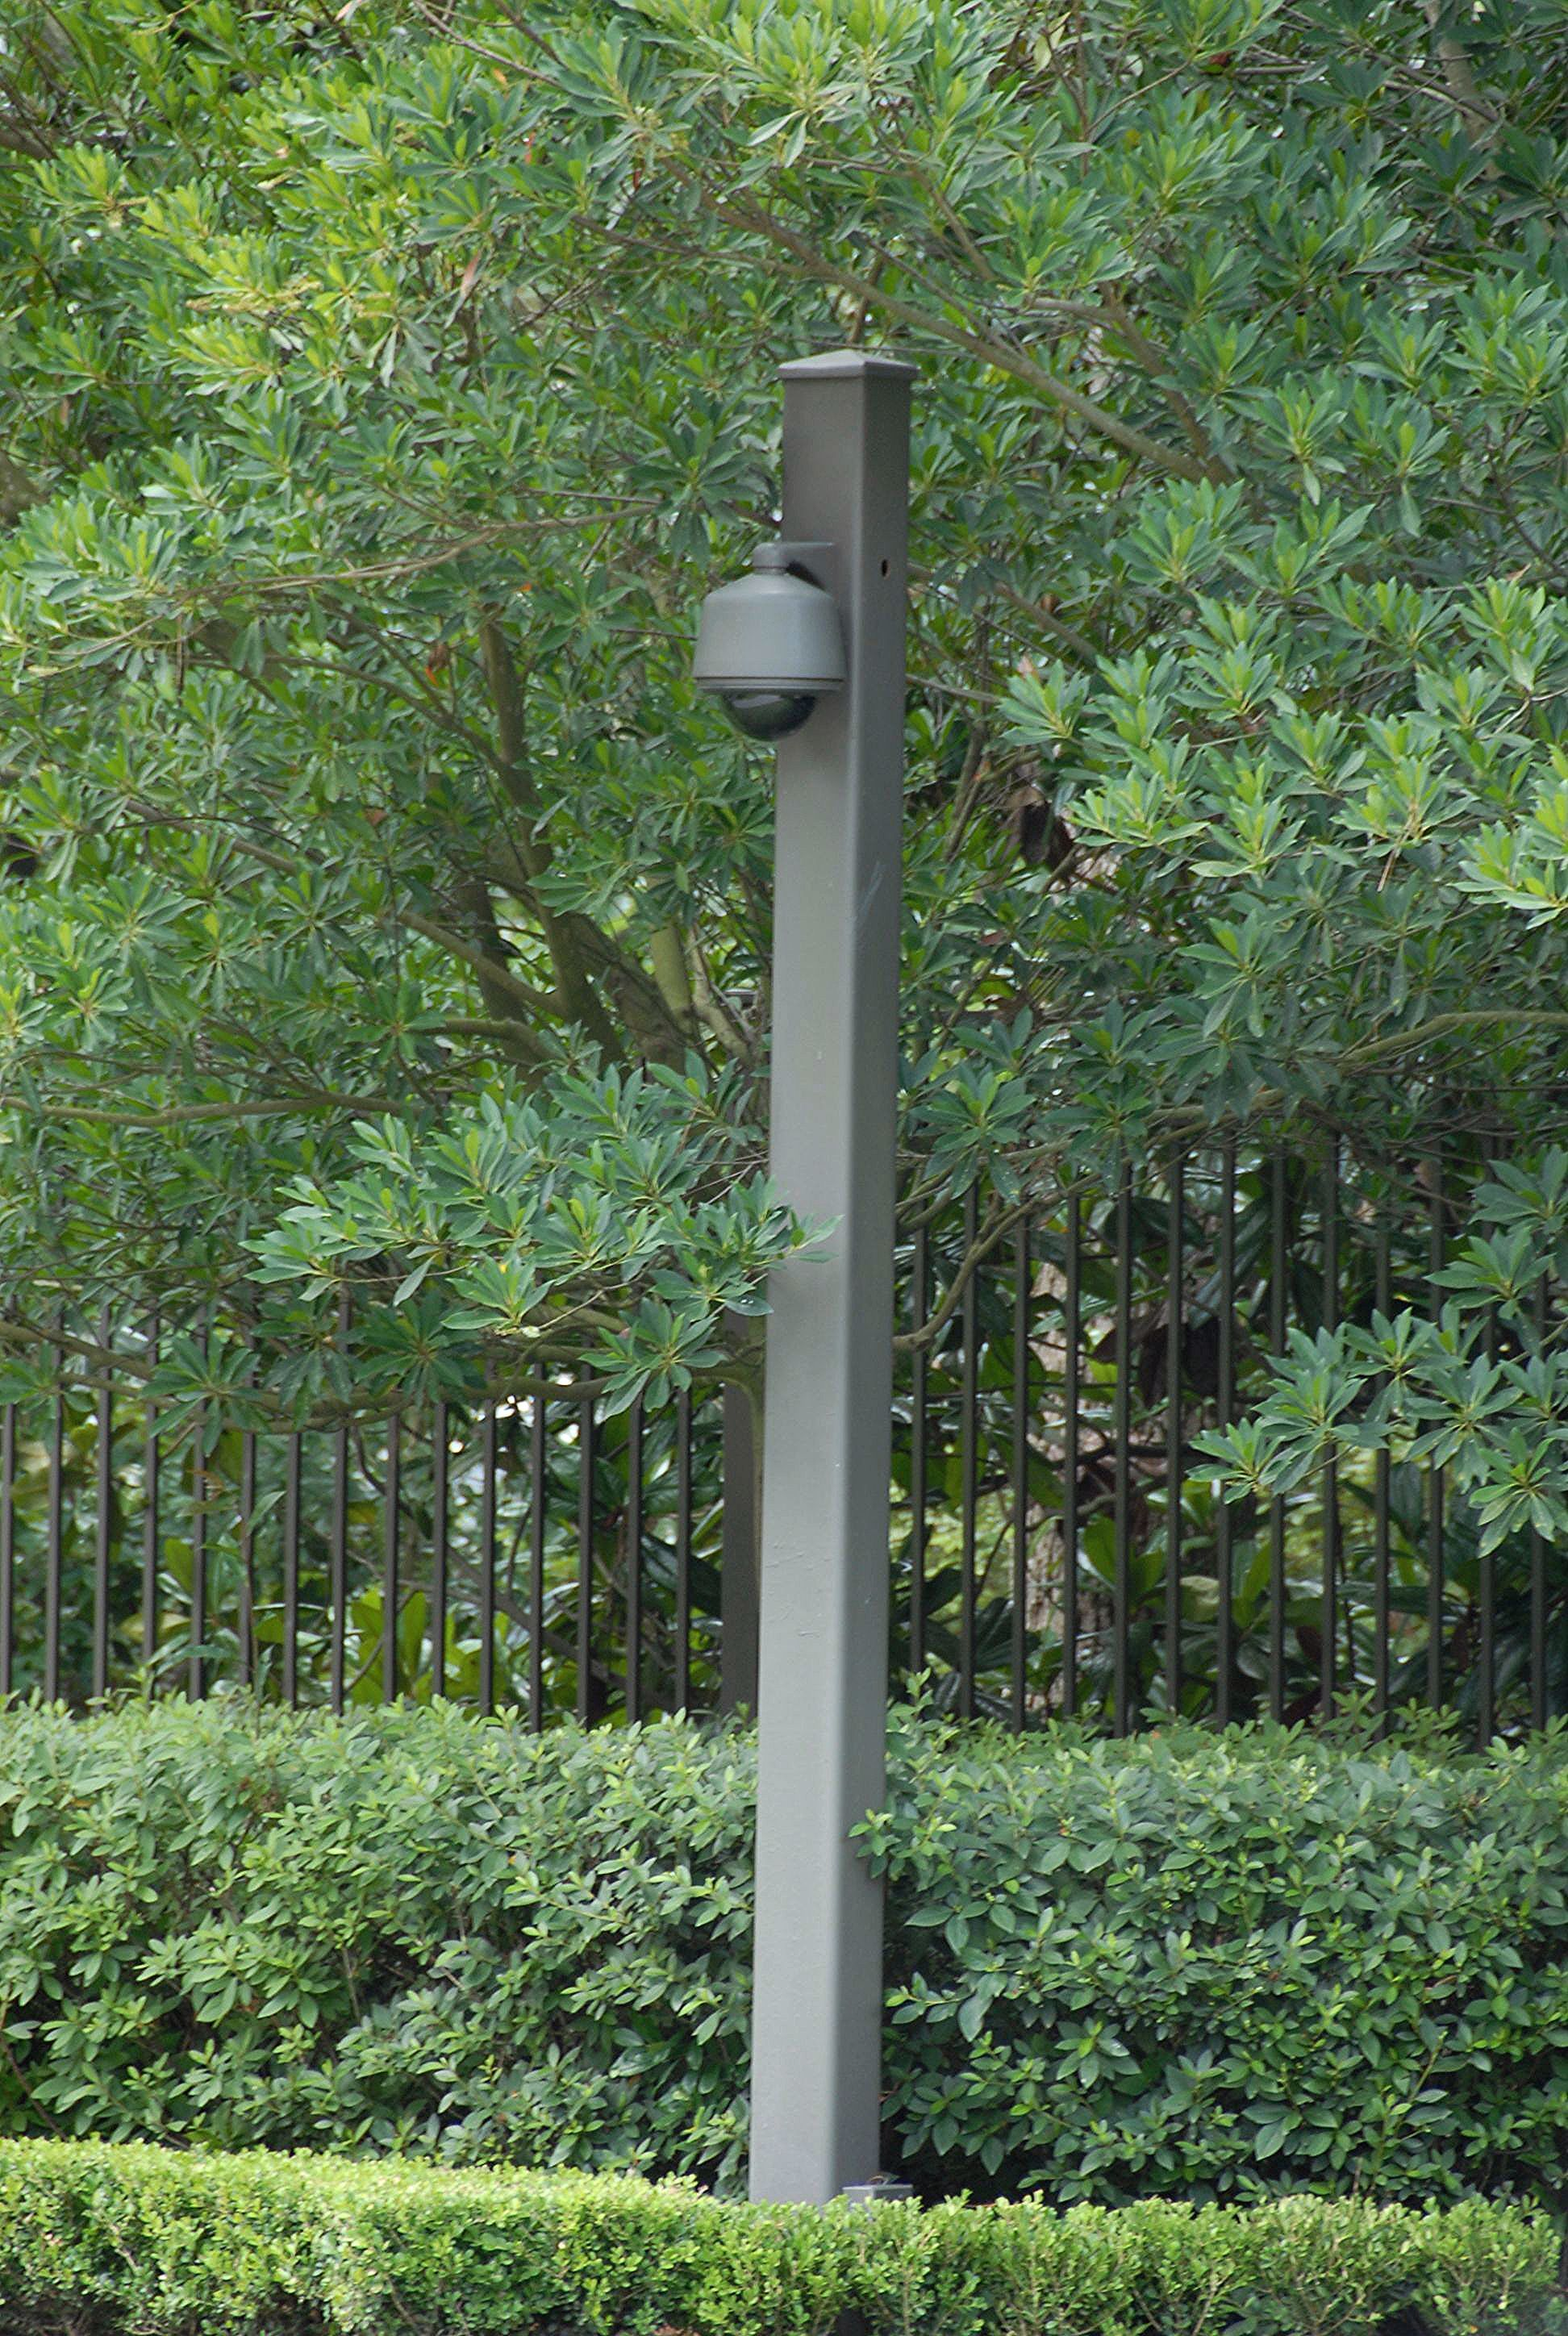 Security Camera Mounted On Commercial Lighting Pole In 2020